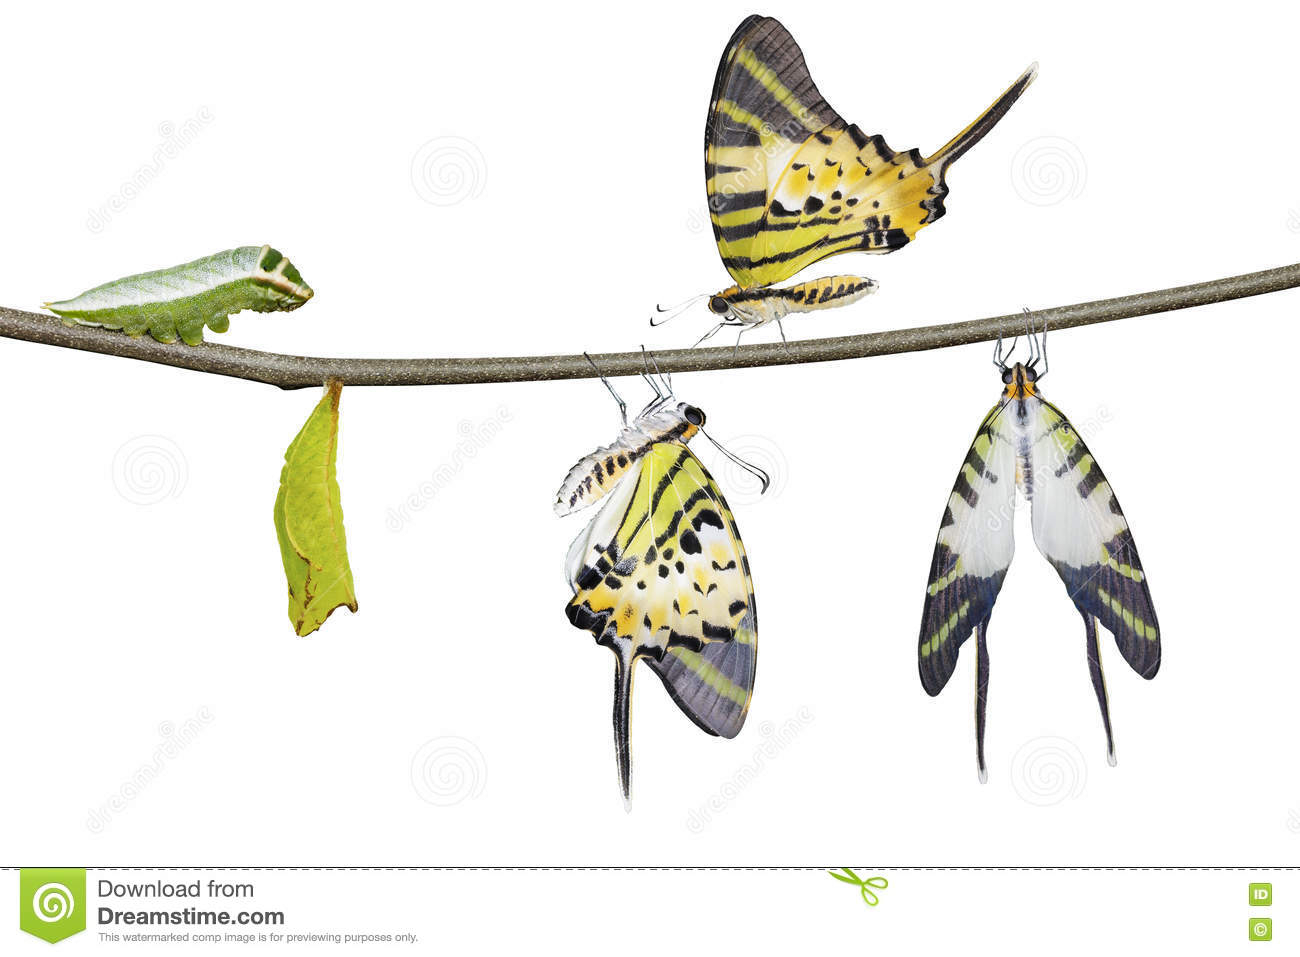 Isolated five bar swordtail butterfly life cycle (antiphates pom